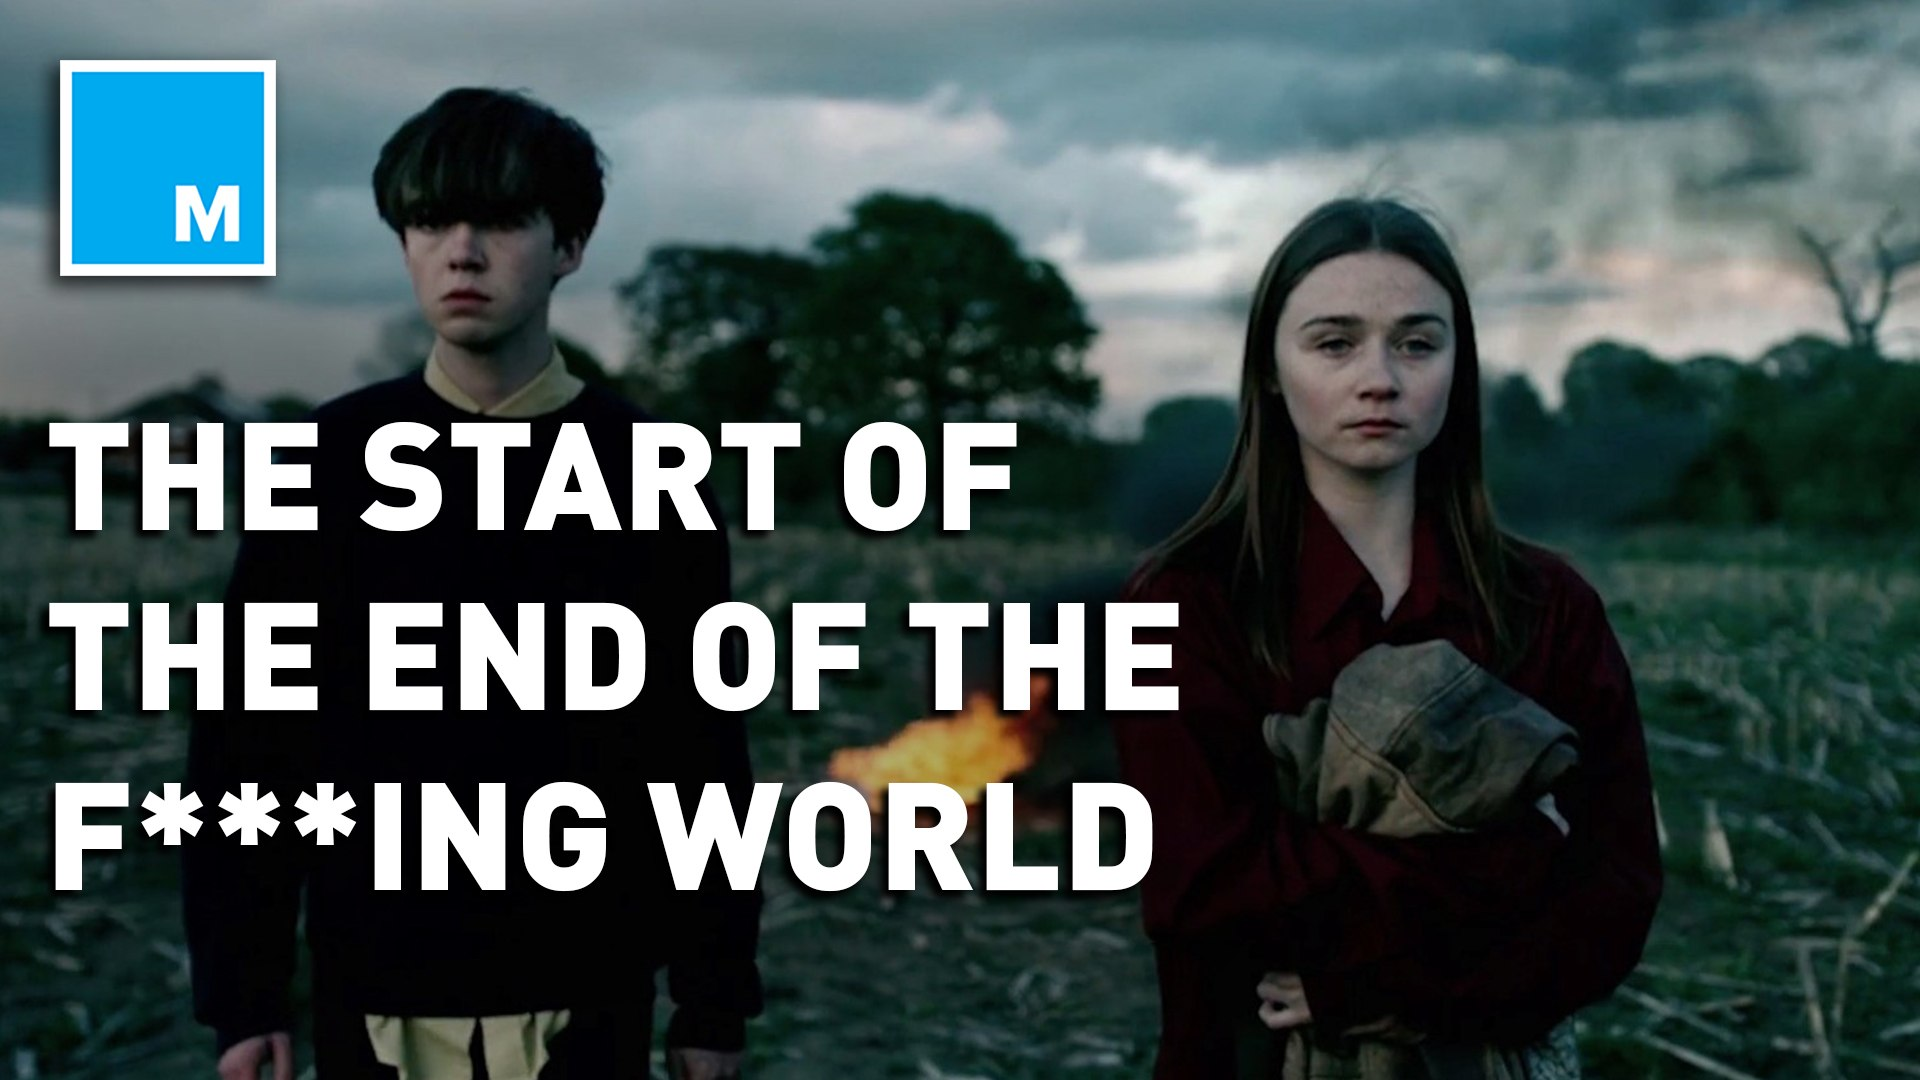 When exactly is the end of the f***ing world in 'The End of the F***ing World'?